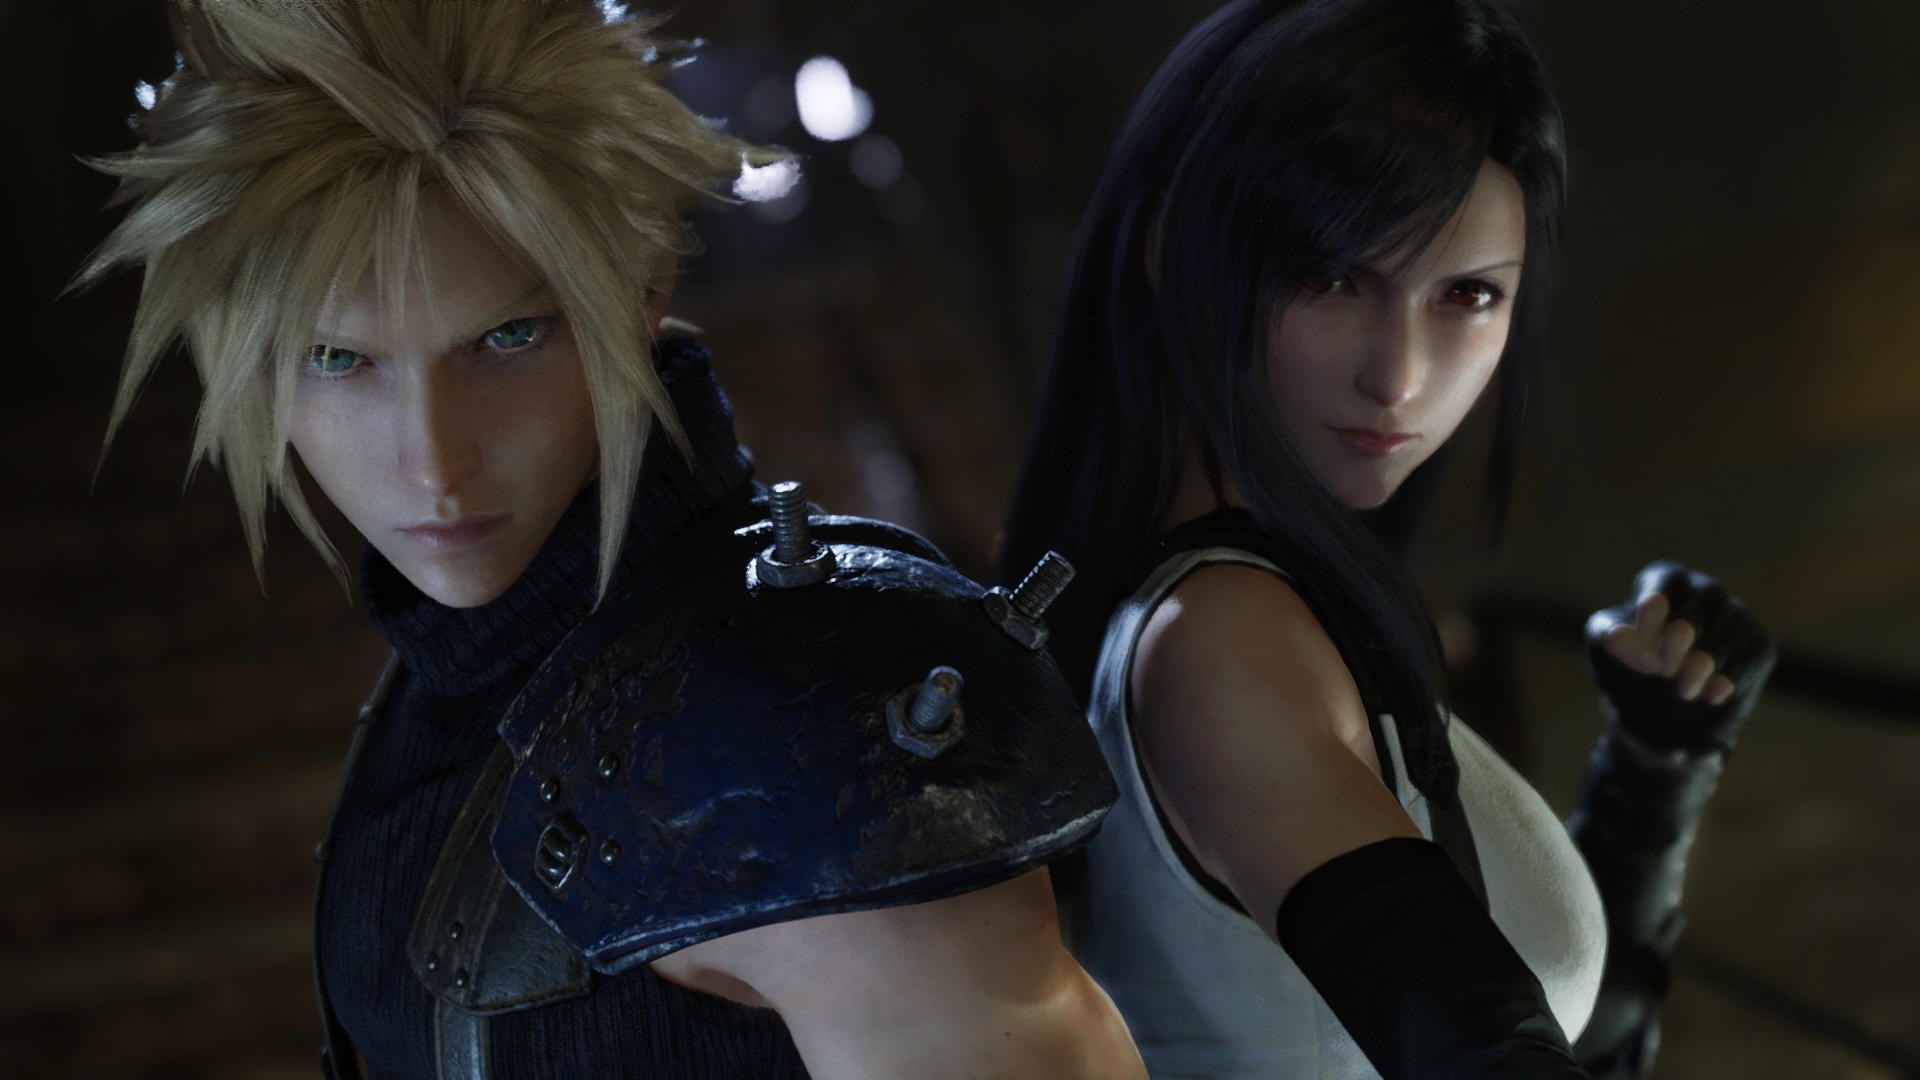 A picture of Cloud and Tifa from the game Final Fantasy 7 Remake.